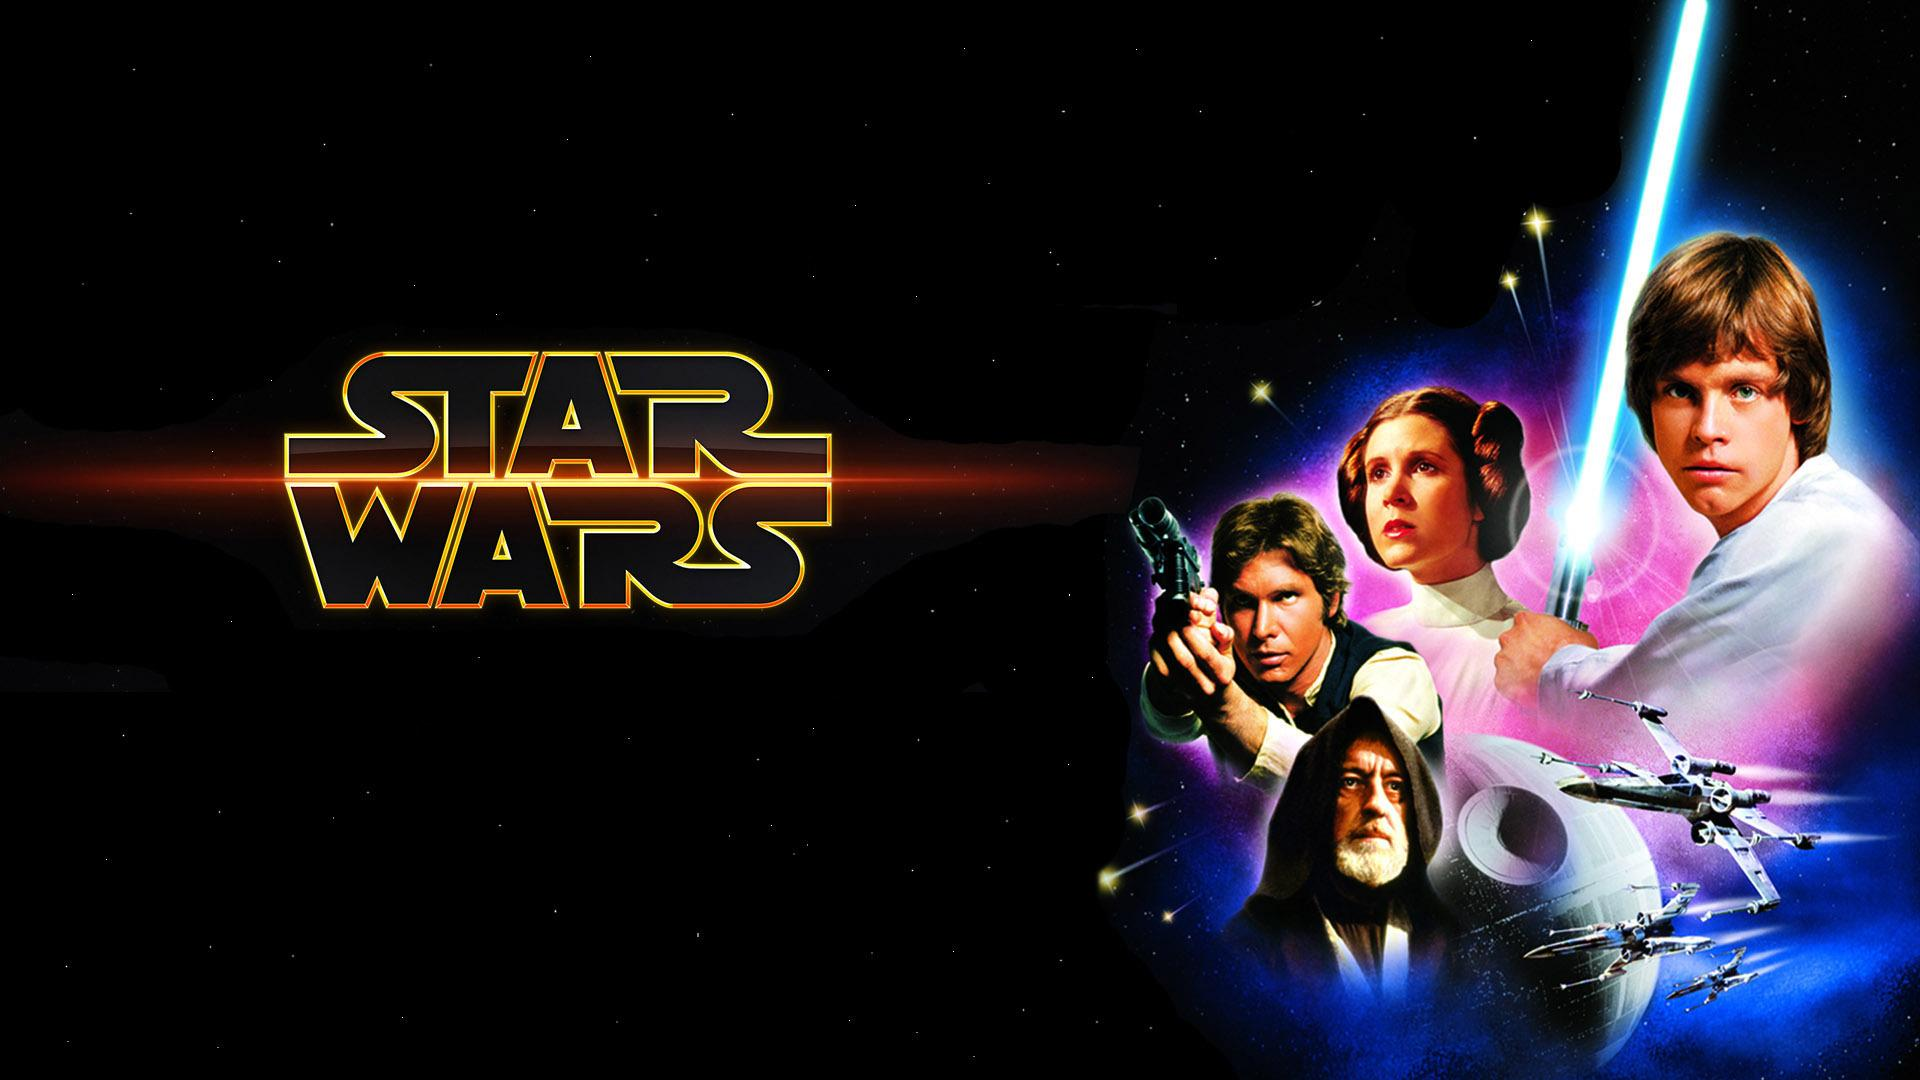 Star Wars New Hope Retro Wallpapers Wallpaper Cave